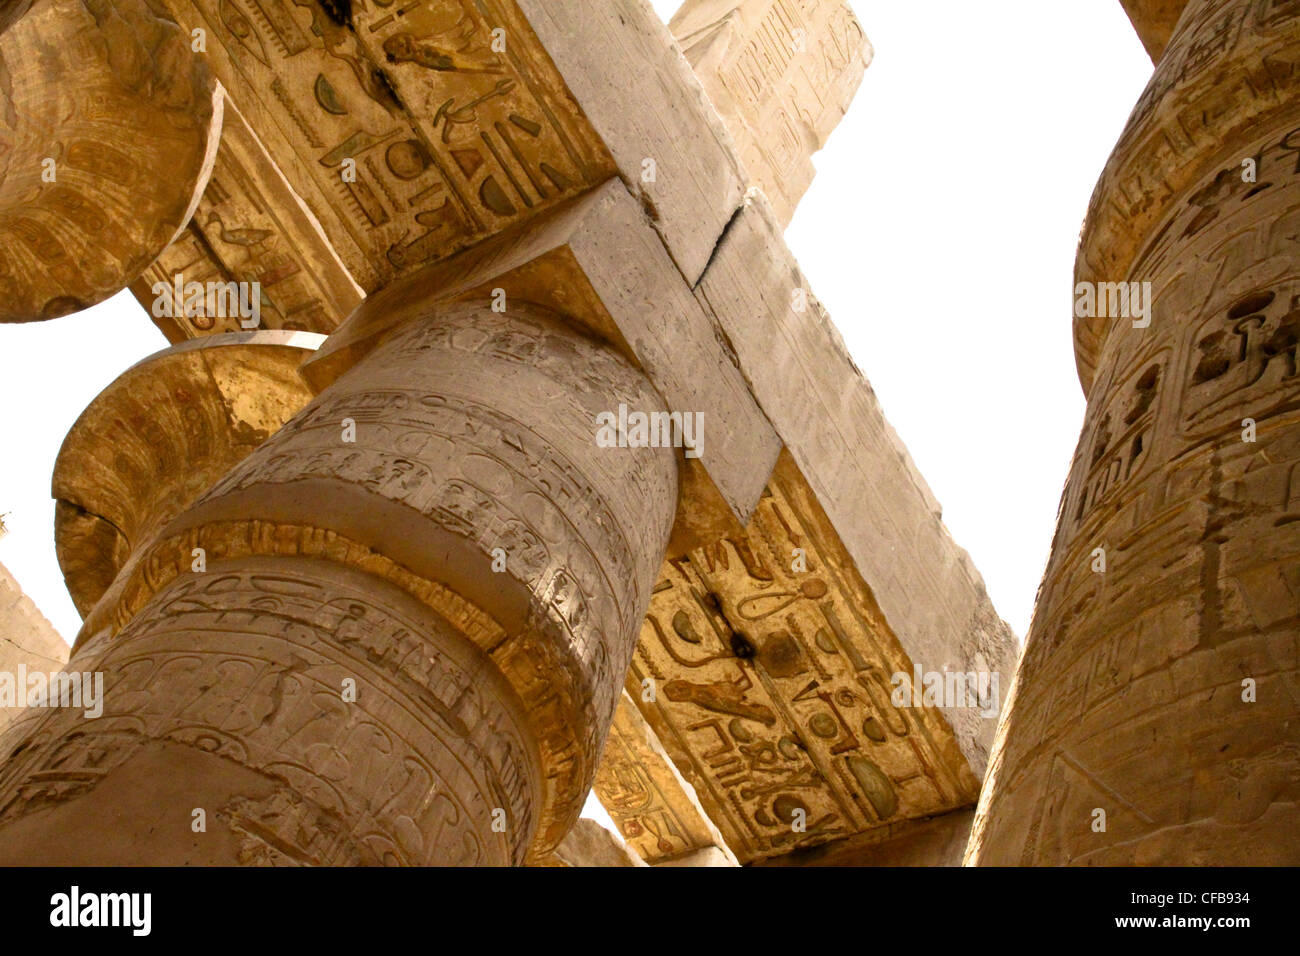 The great temple of Karnak dedicated to the worship of Amun, in the city of Luxor in Egypt - Stock Image